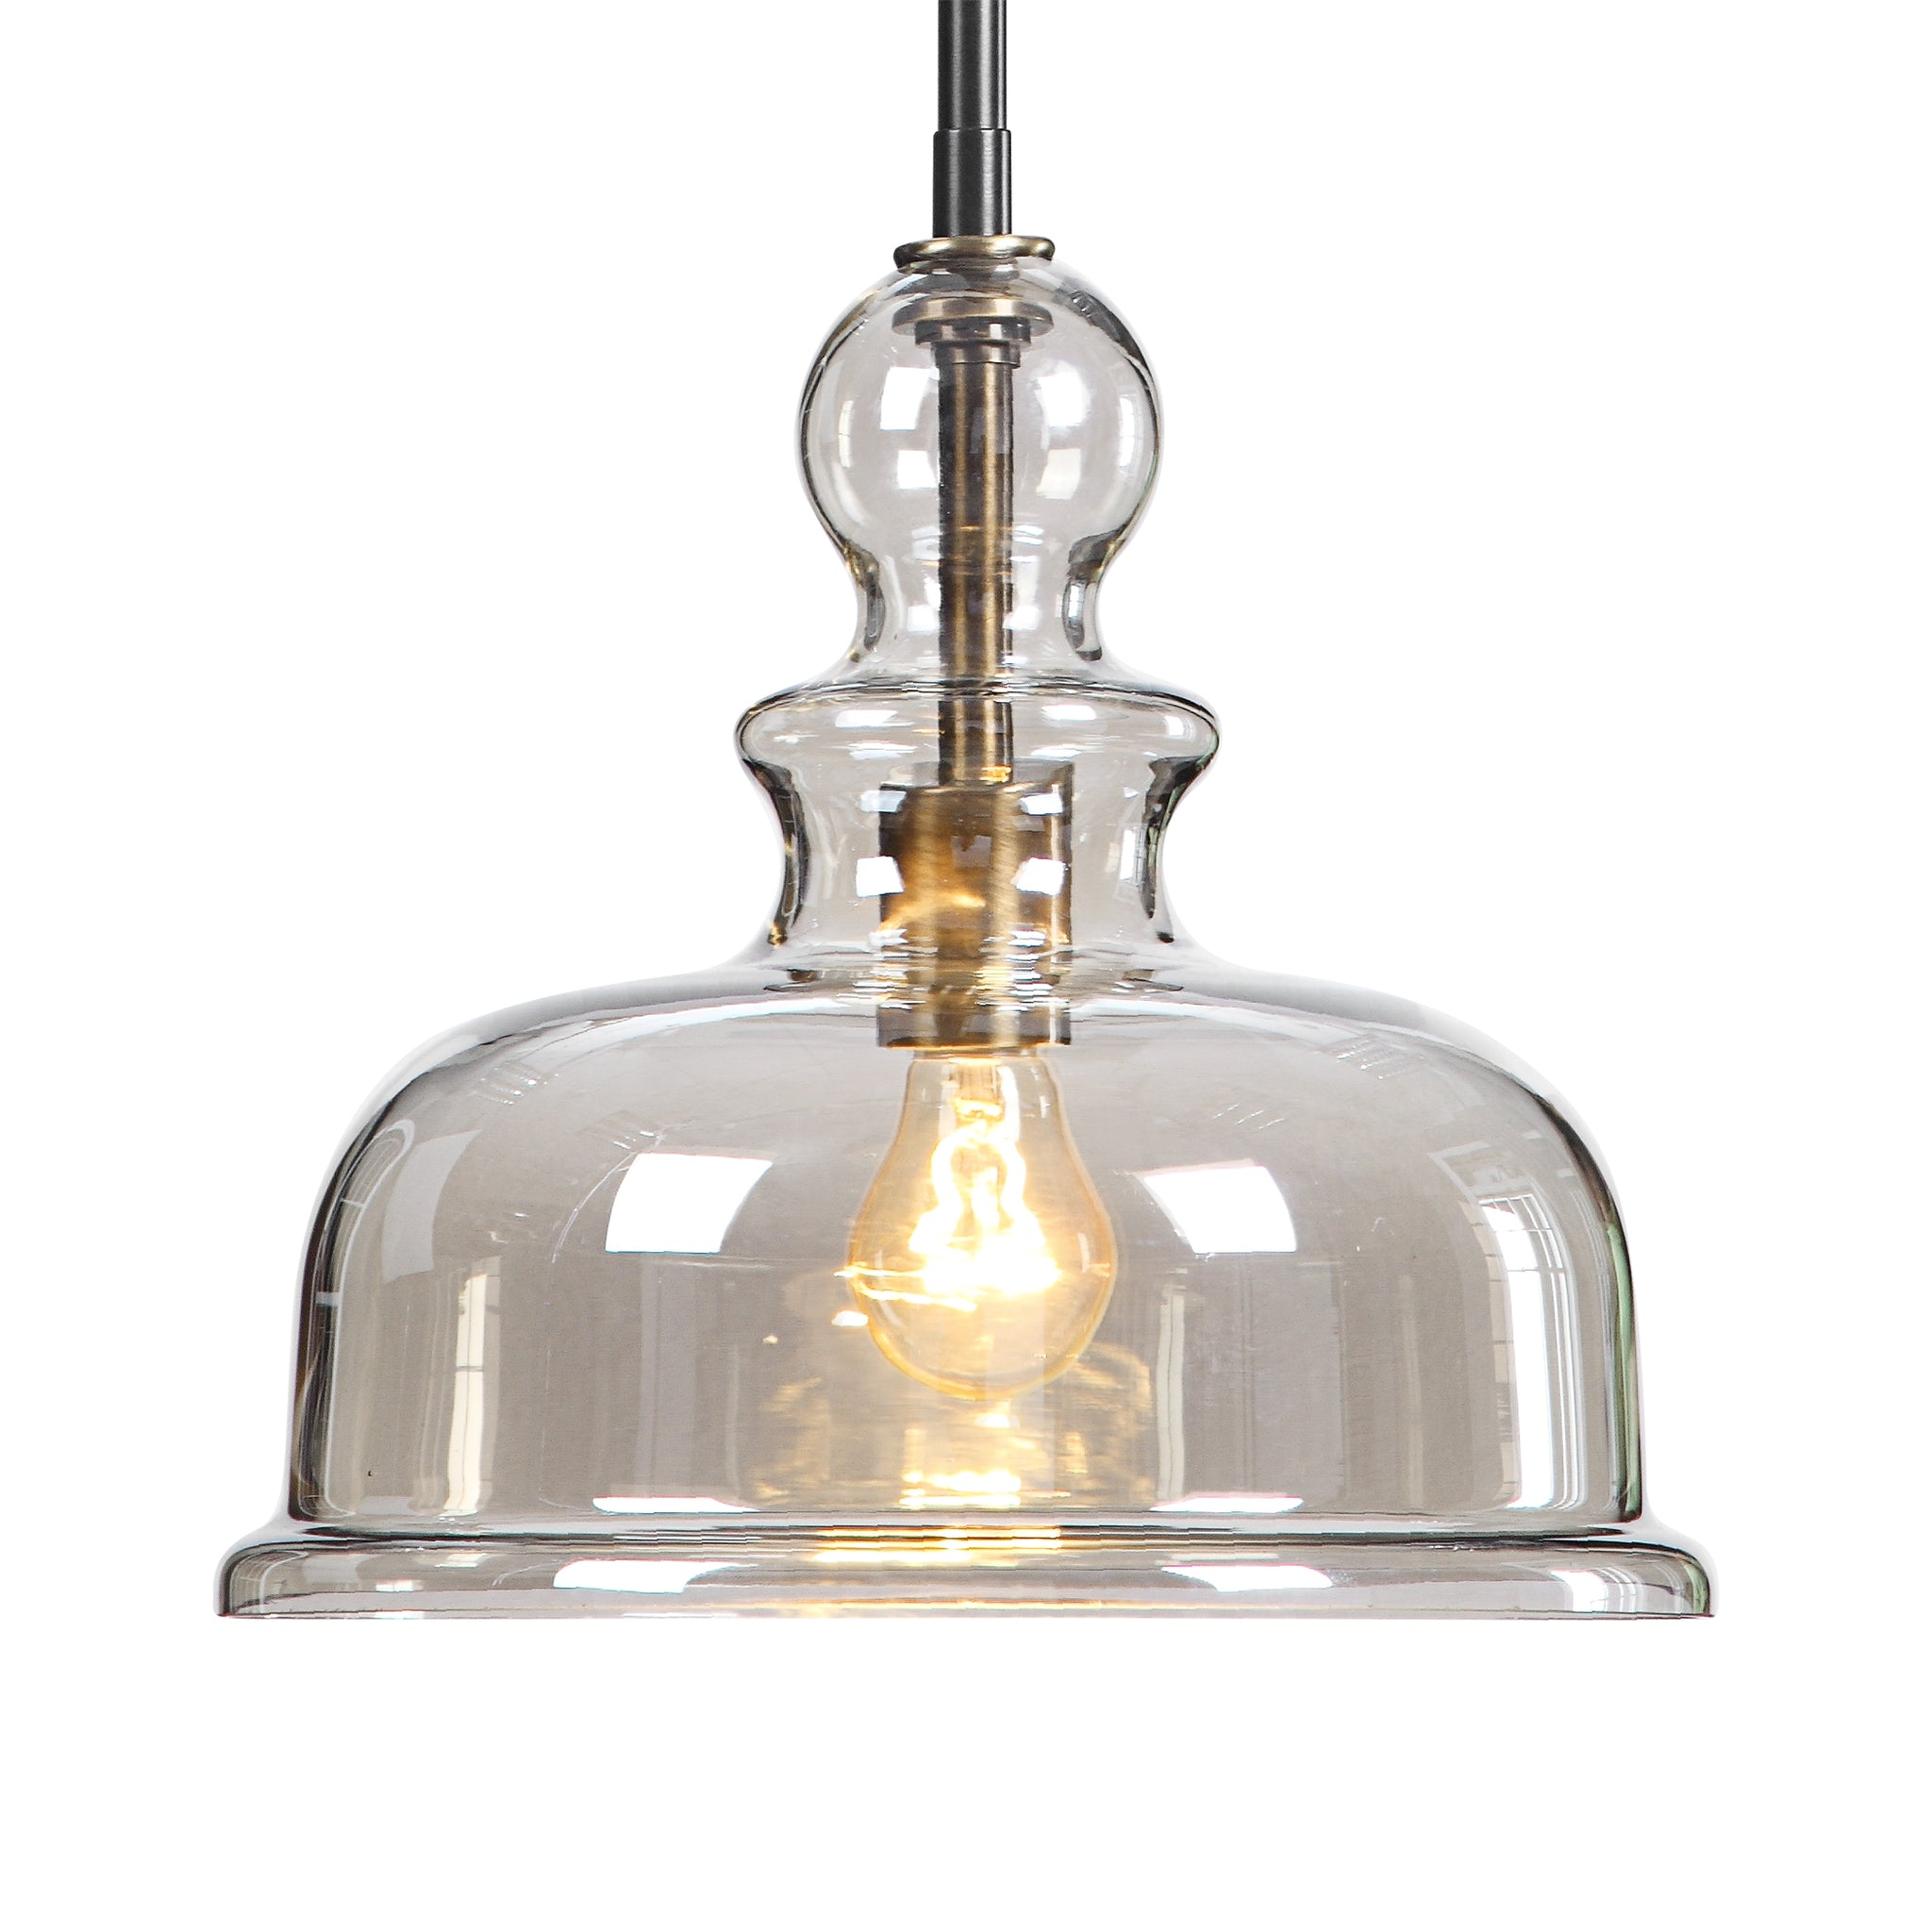 Uttermost Eaton 1 Light Glass Pendant